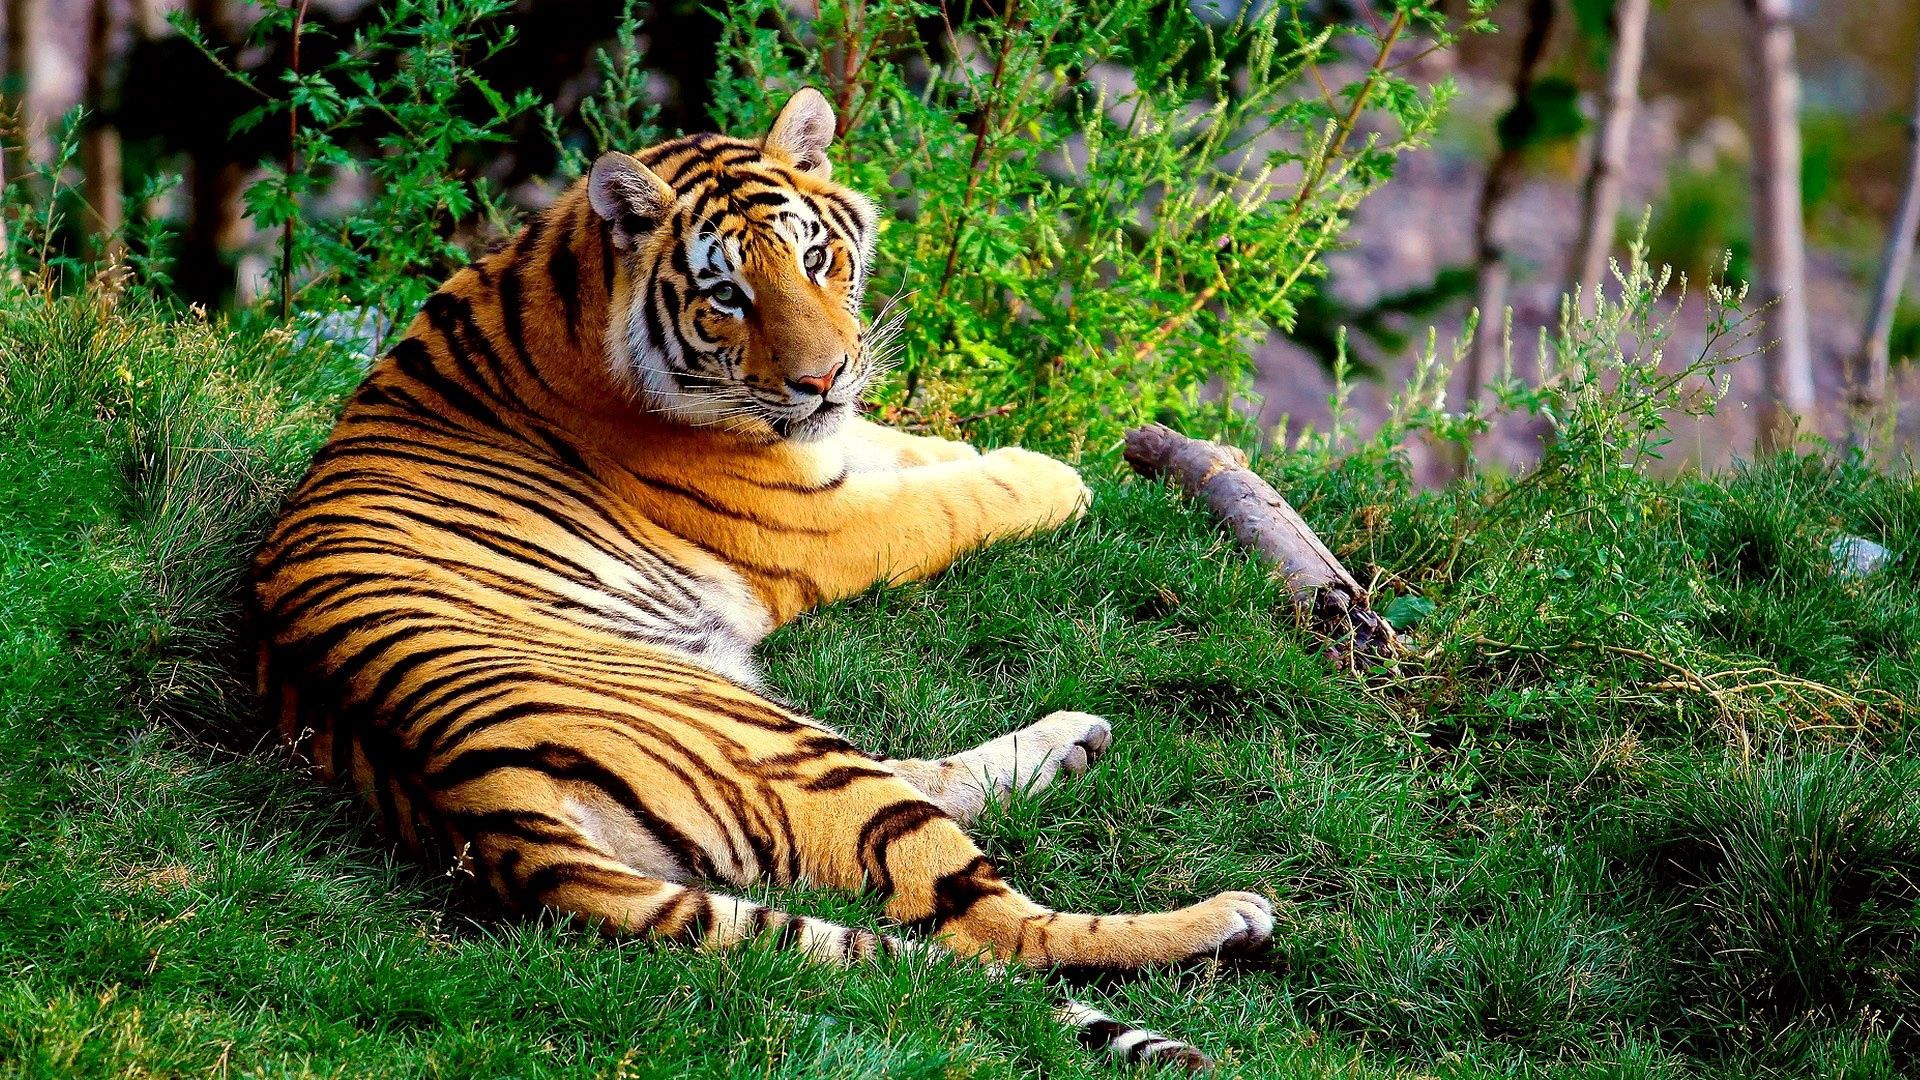 53803 download wallpaper Animals, Tiger, To Lie Down, Lie, Grass, Forest, Big Cat screensavers and pictures for free